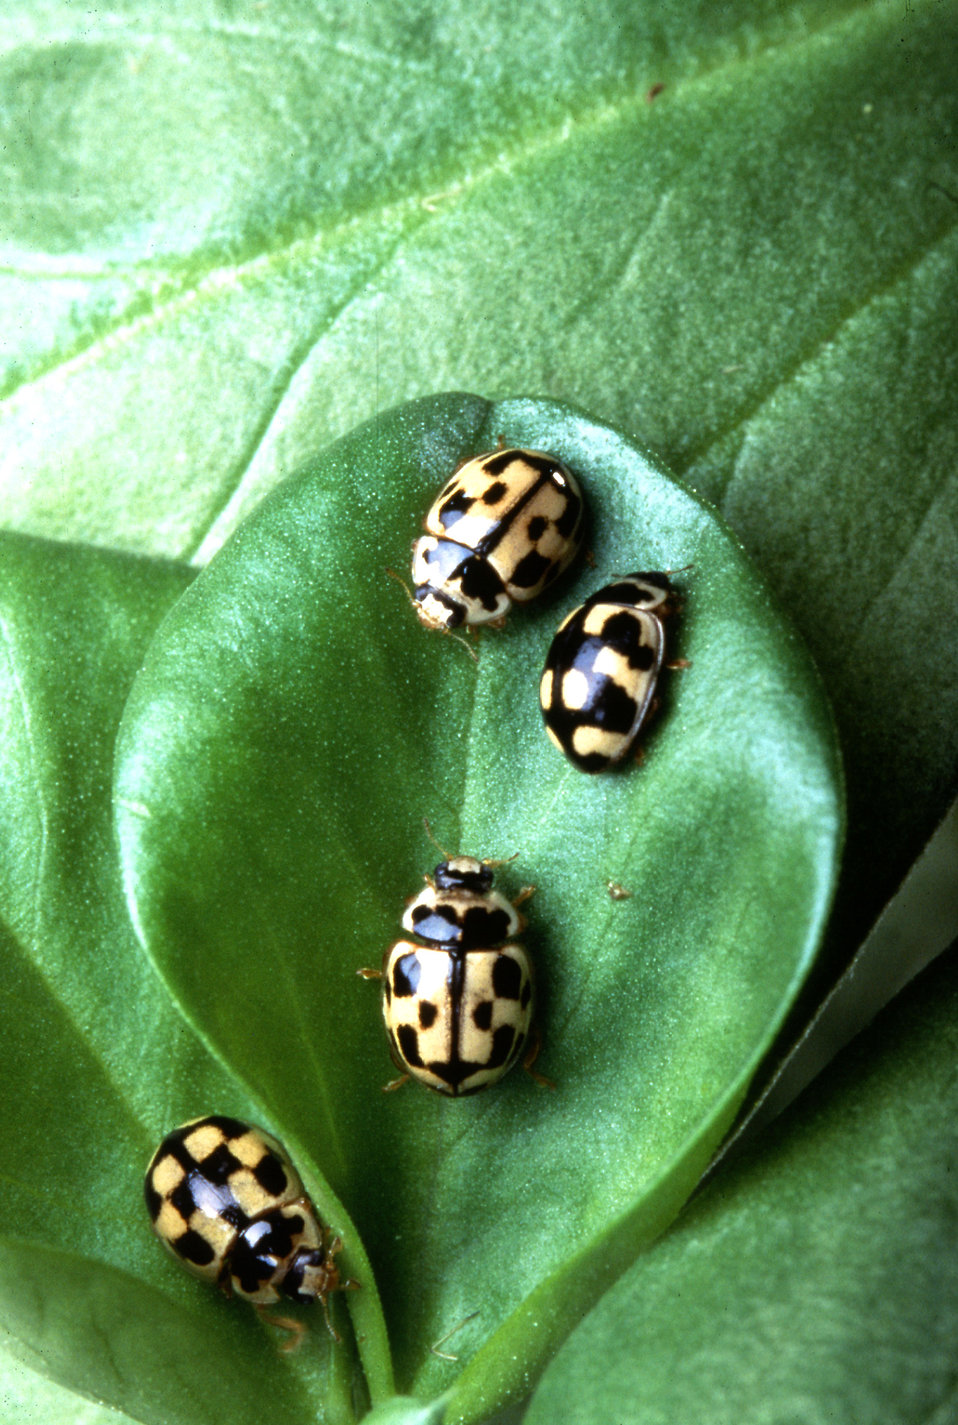 Ladybugs, Propylea quatuordecimpunctata, on a fava bean leaf : Free Stock Photo